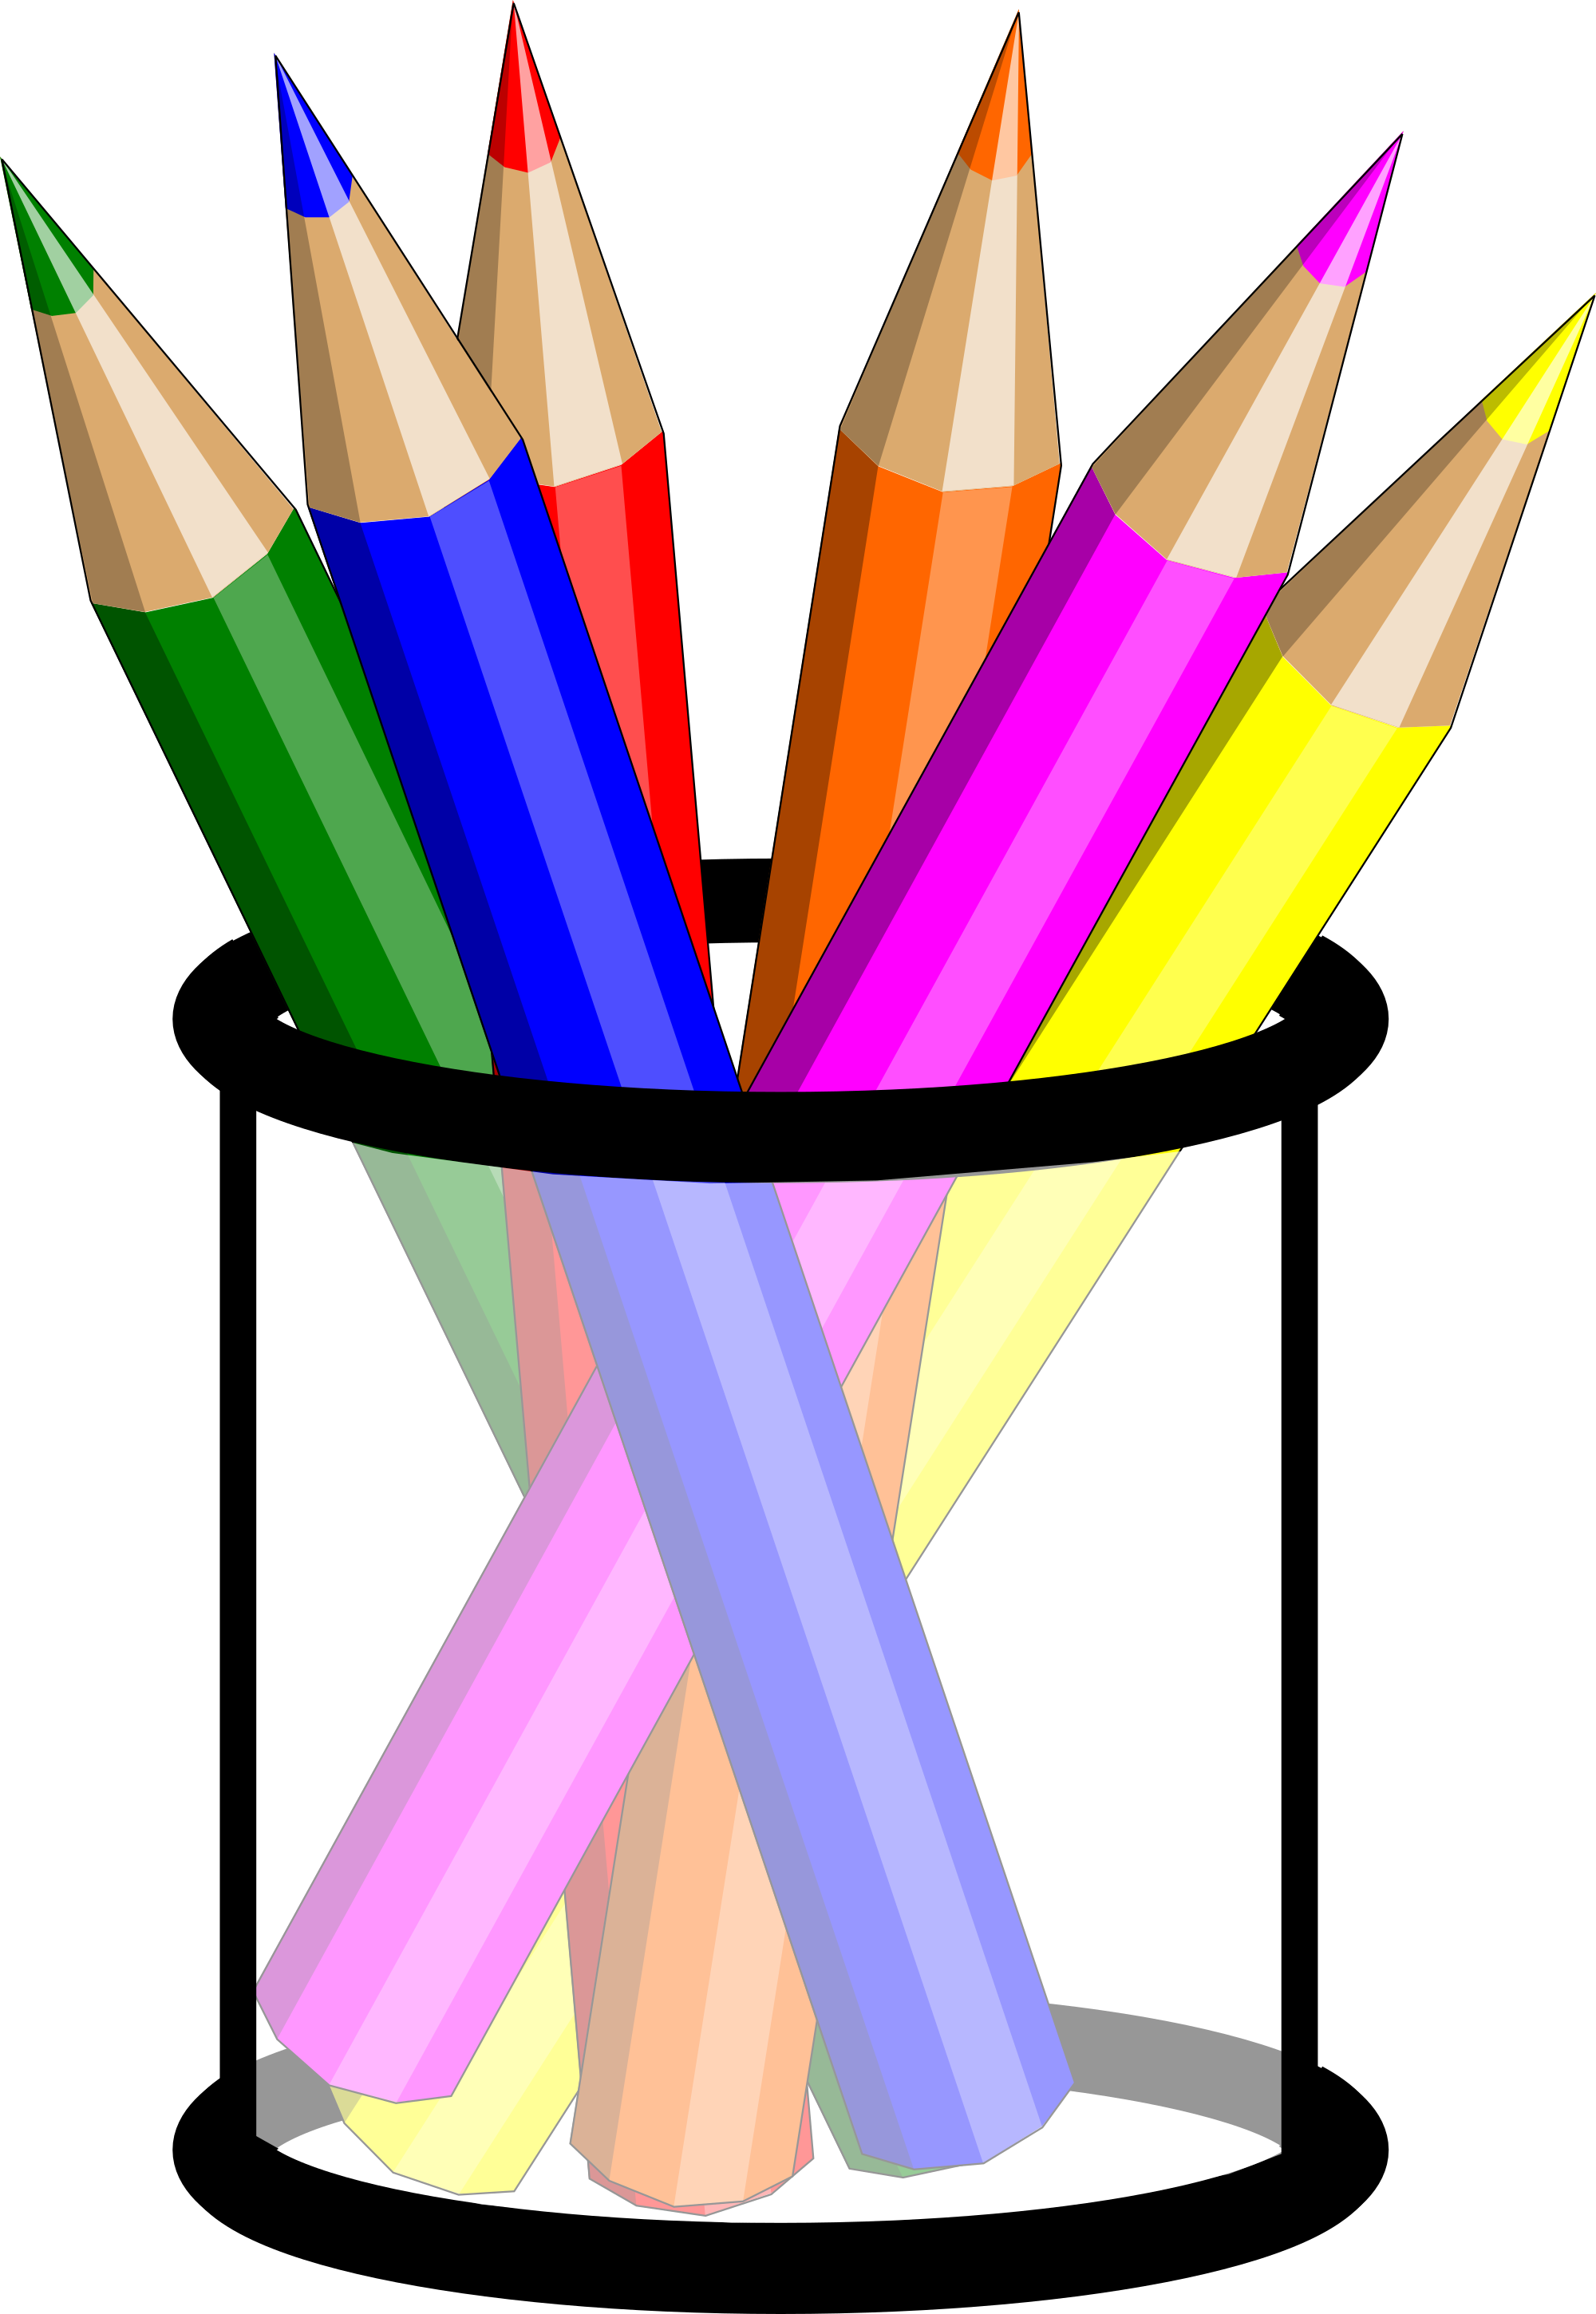 clipart-pencil-break-17